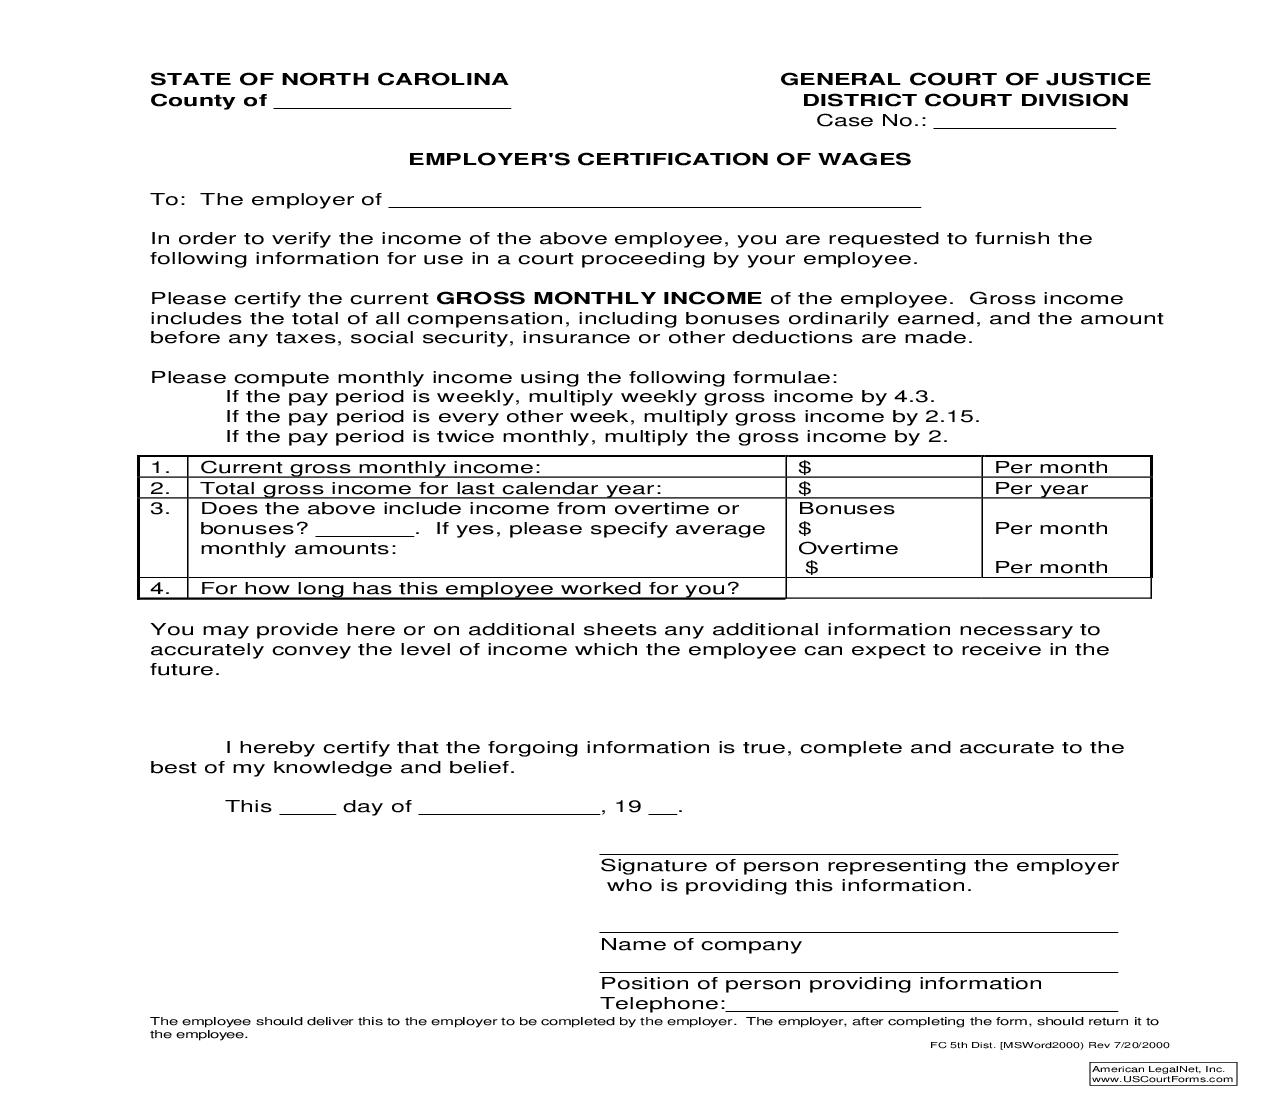 Employers Certification Of Wages {2}   Pdf Fpdf Doc Docx   North Carolina